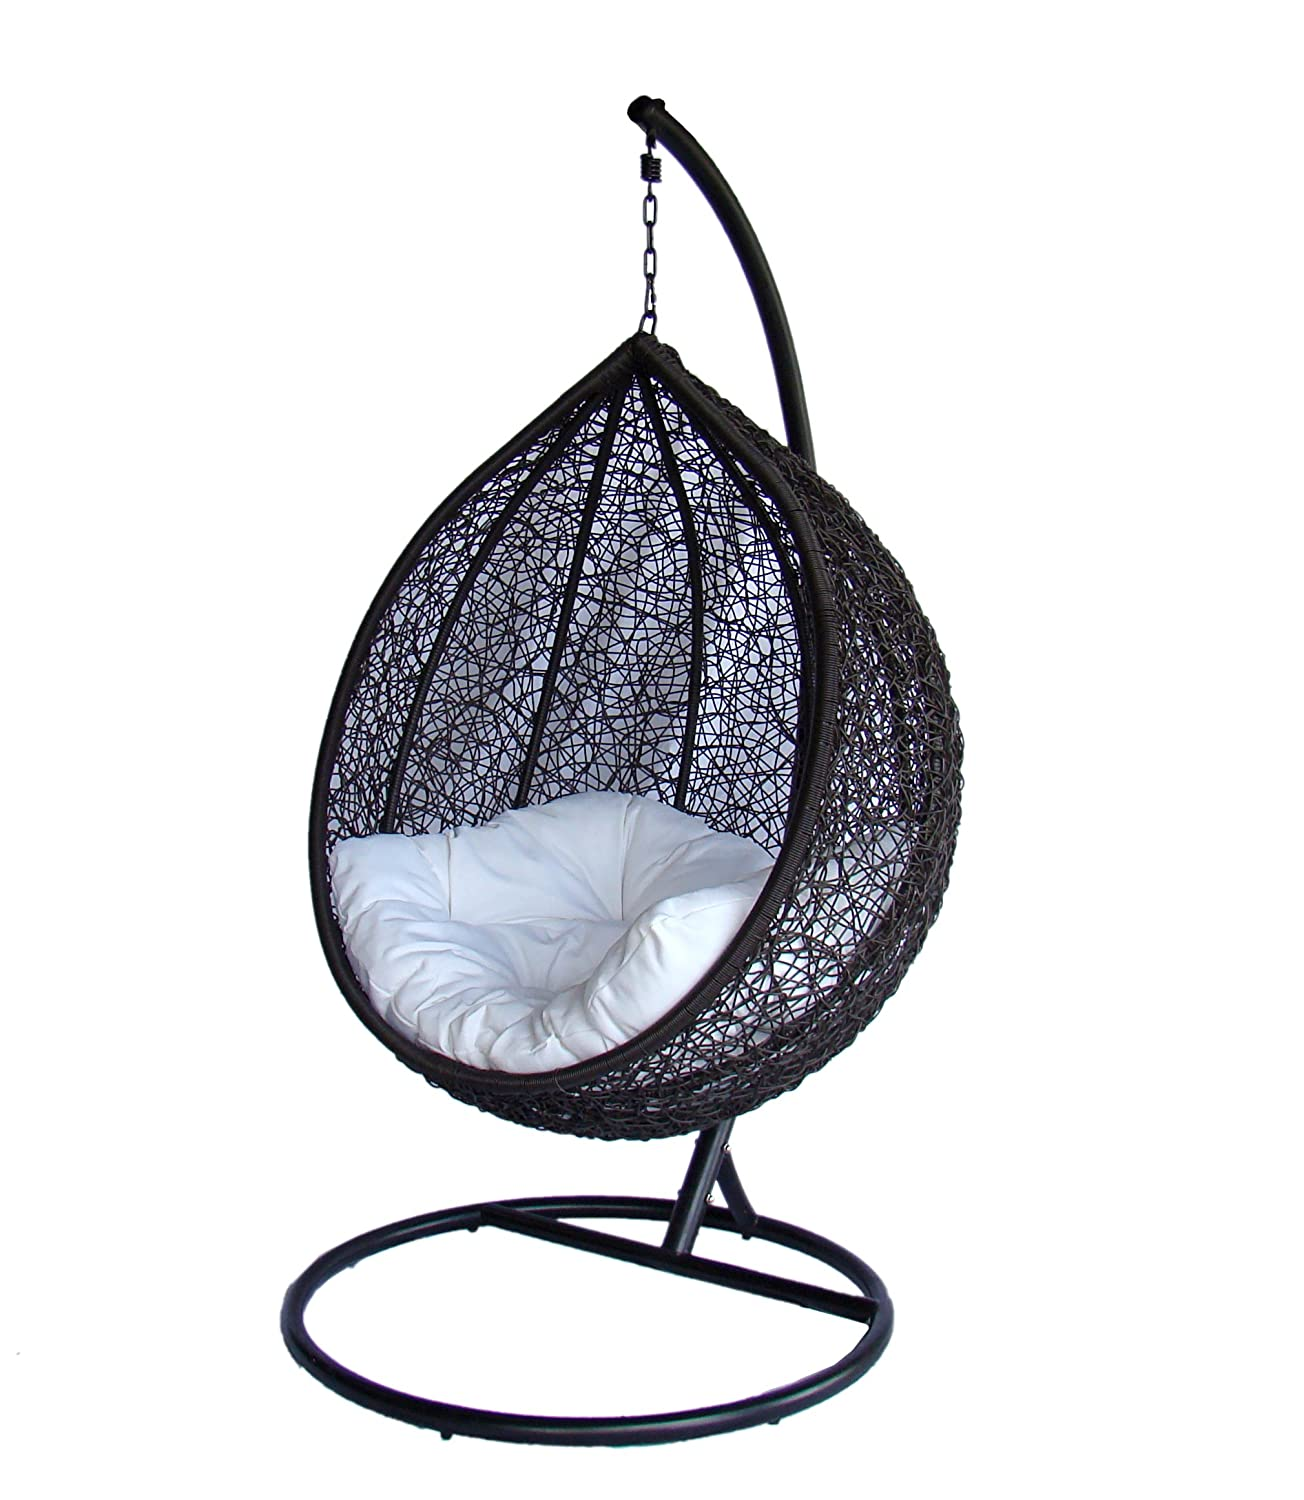 h tag straps chair rablstra best chairs stand tree with hamock cheap m bcnchen hammock